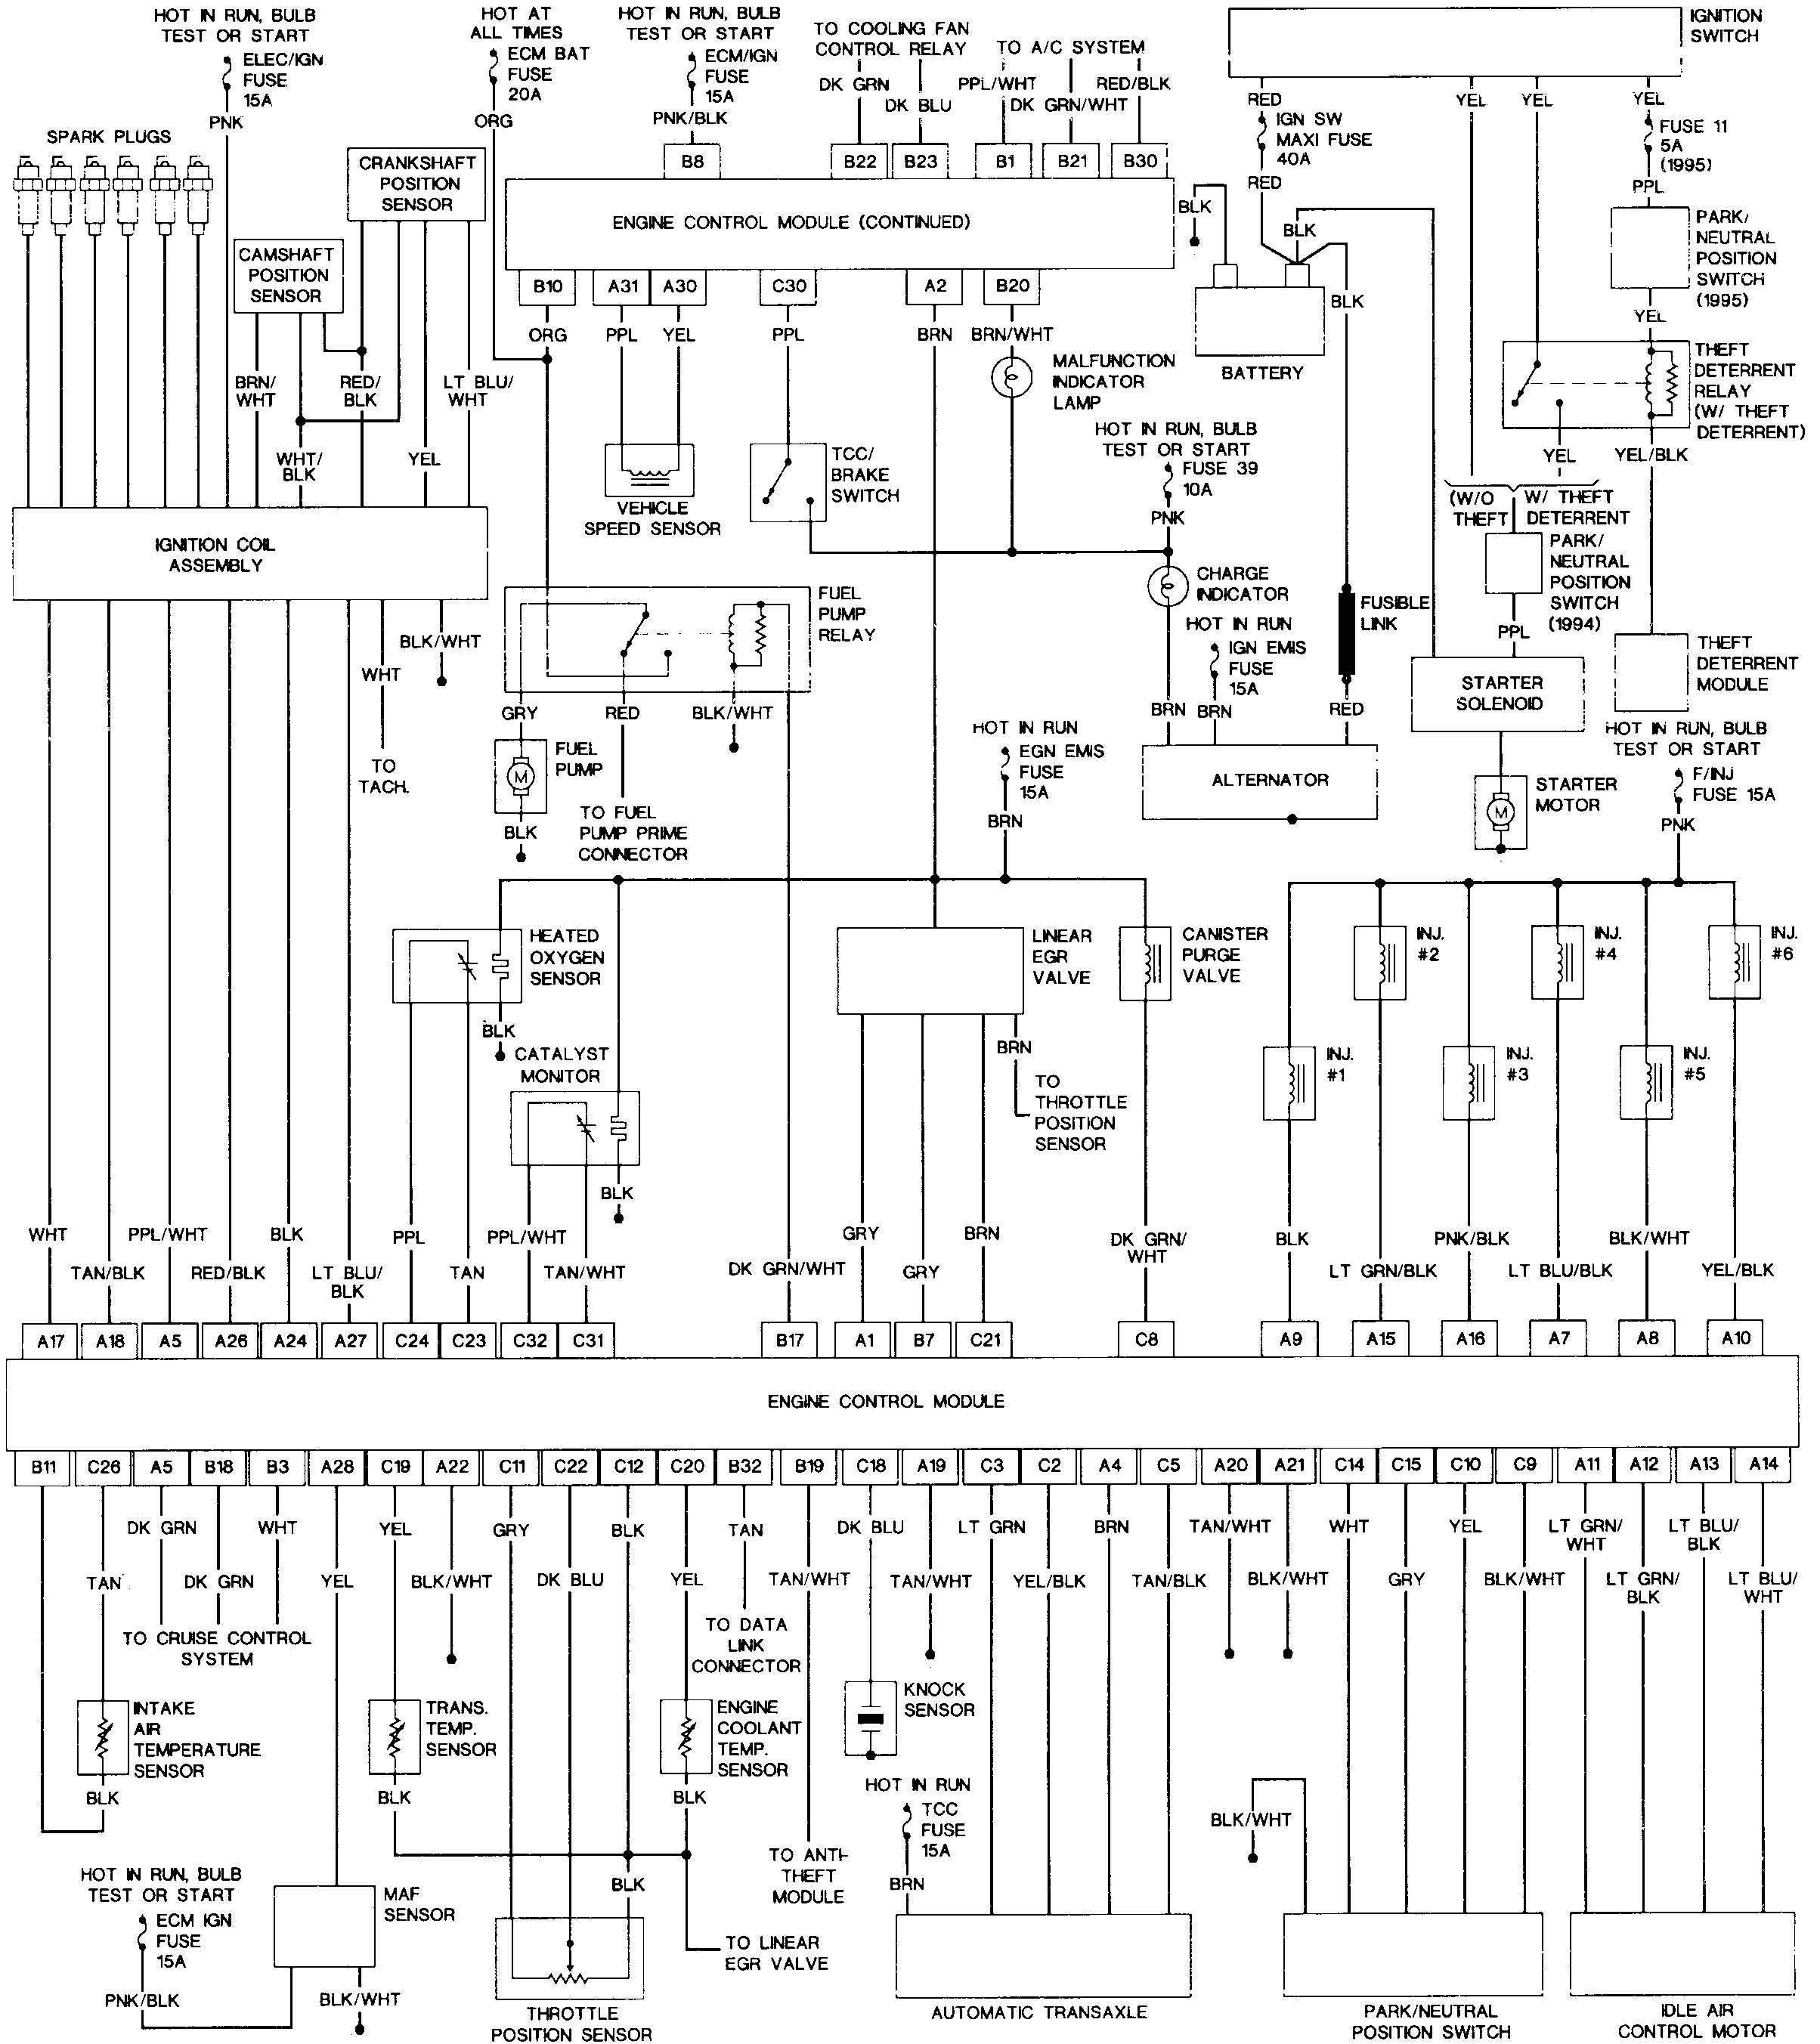 2000 buick century engine diagram 2000 buick century radio